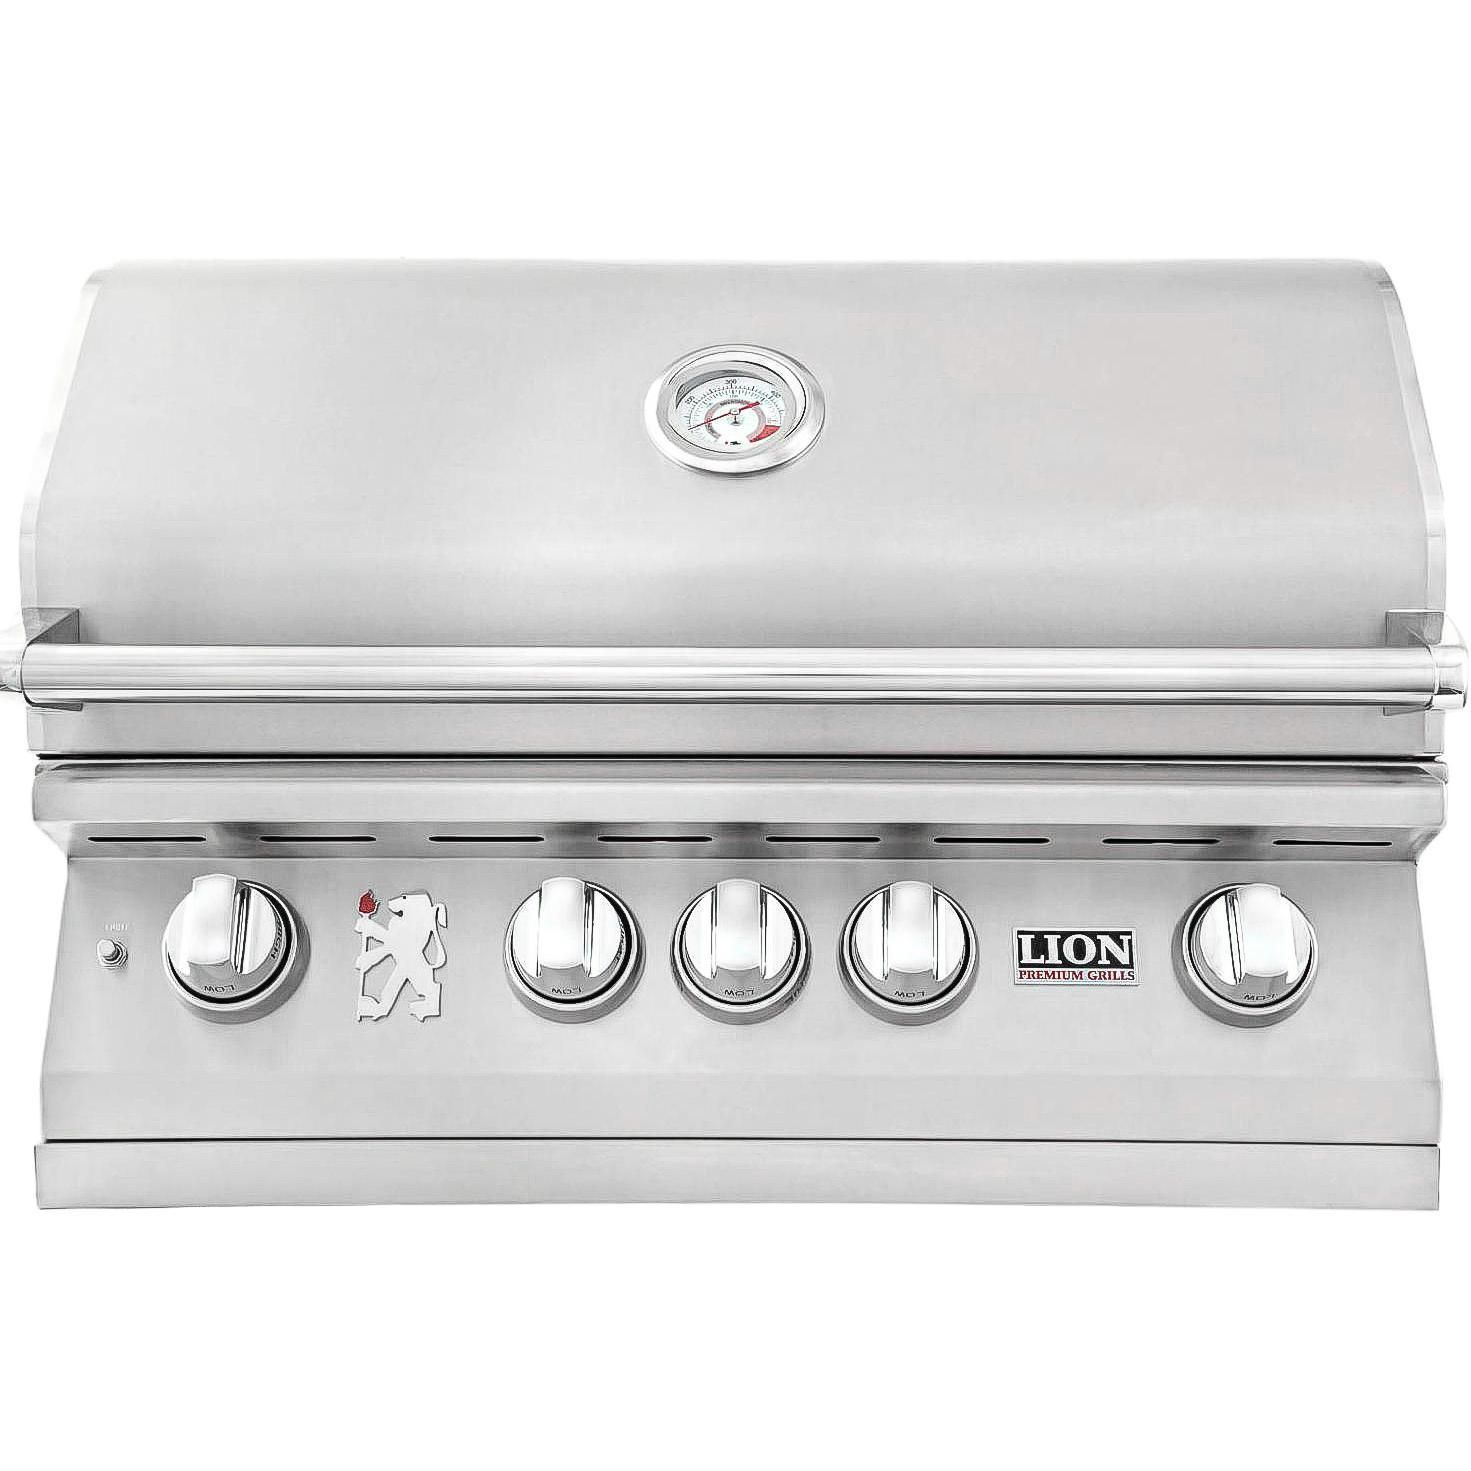 Lion L75000 32 Inch Stainless Steel Built In Propane Gas Grill Outdoor Kitchen Design Built In Gas Grills Grilling